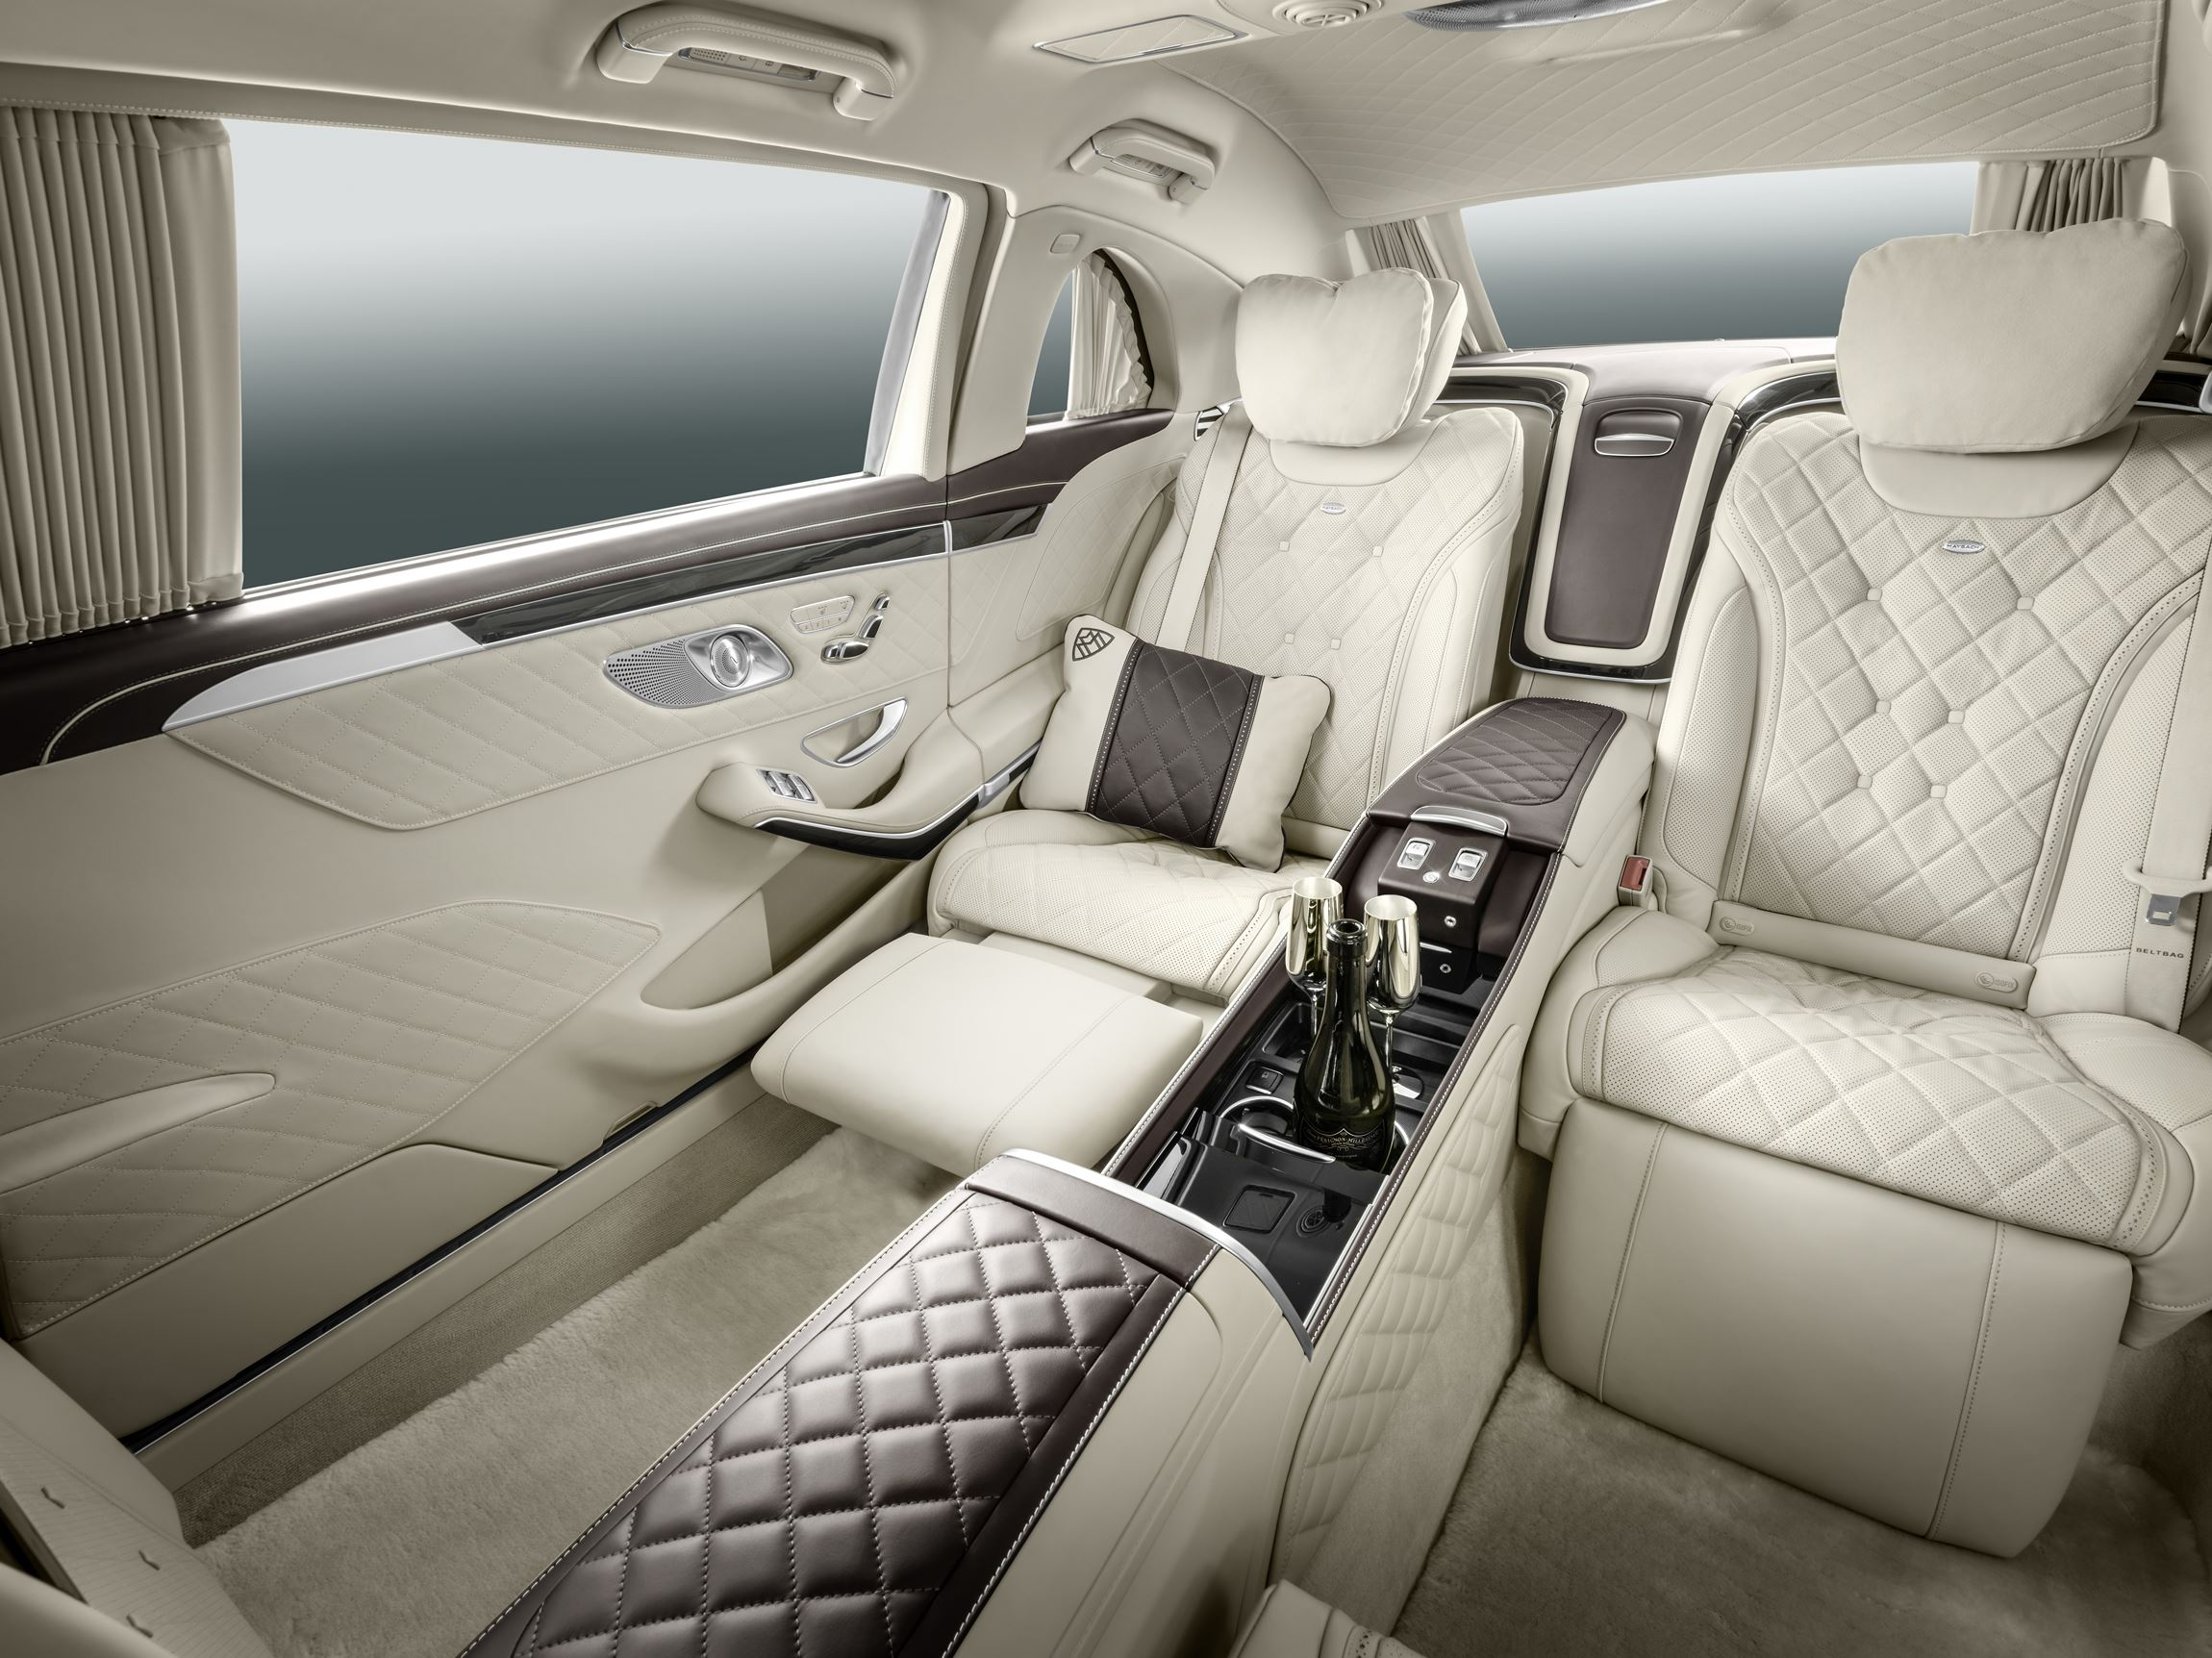 http://www.car-revs-daily.com/wp-content/uploads/2016-Mercedes-Maybach-PULLMAN-Limo-20.jpg